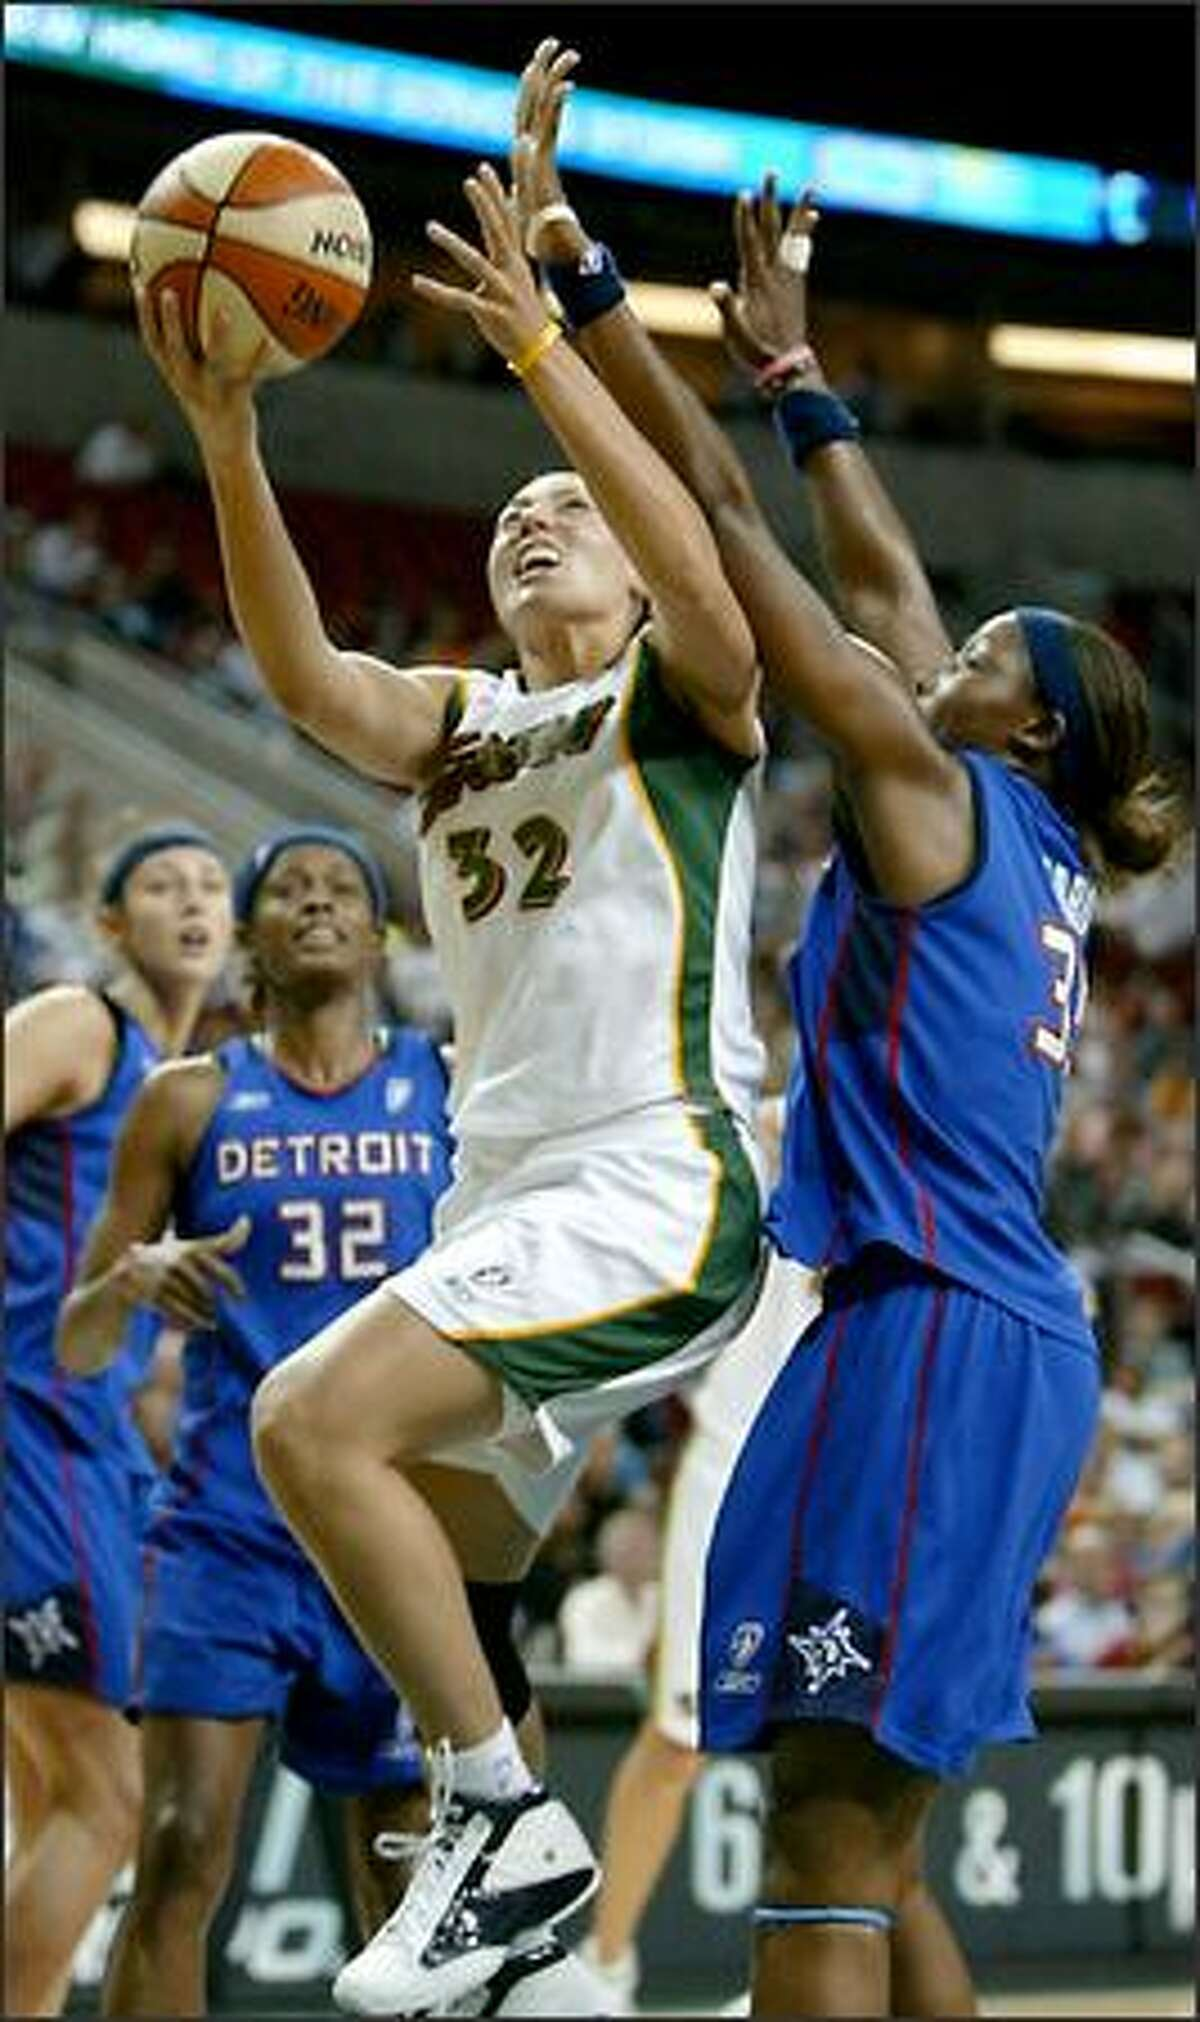 Seattle's Adia Barnes drives to the hoop as Detroit's Cheryl Ford tries for the block.